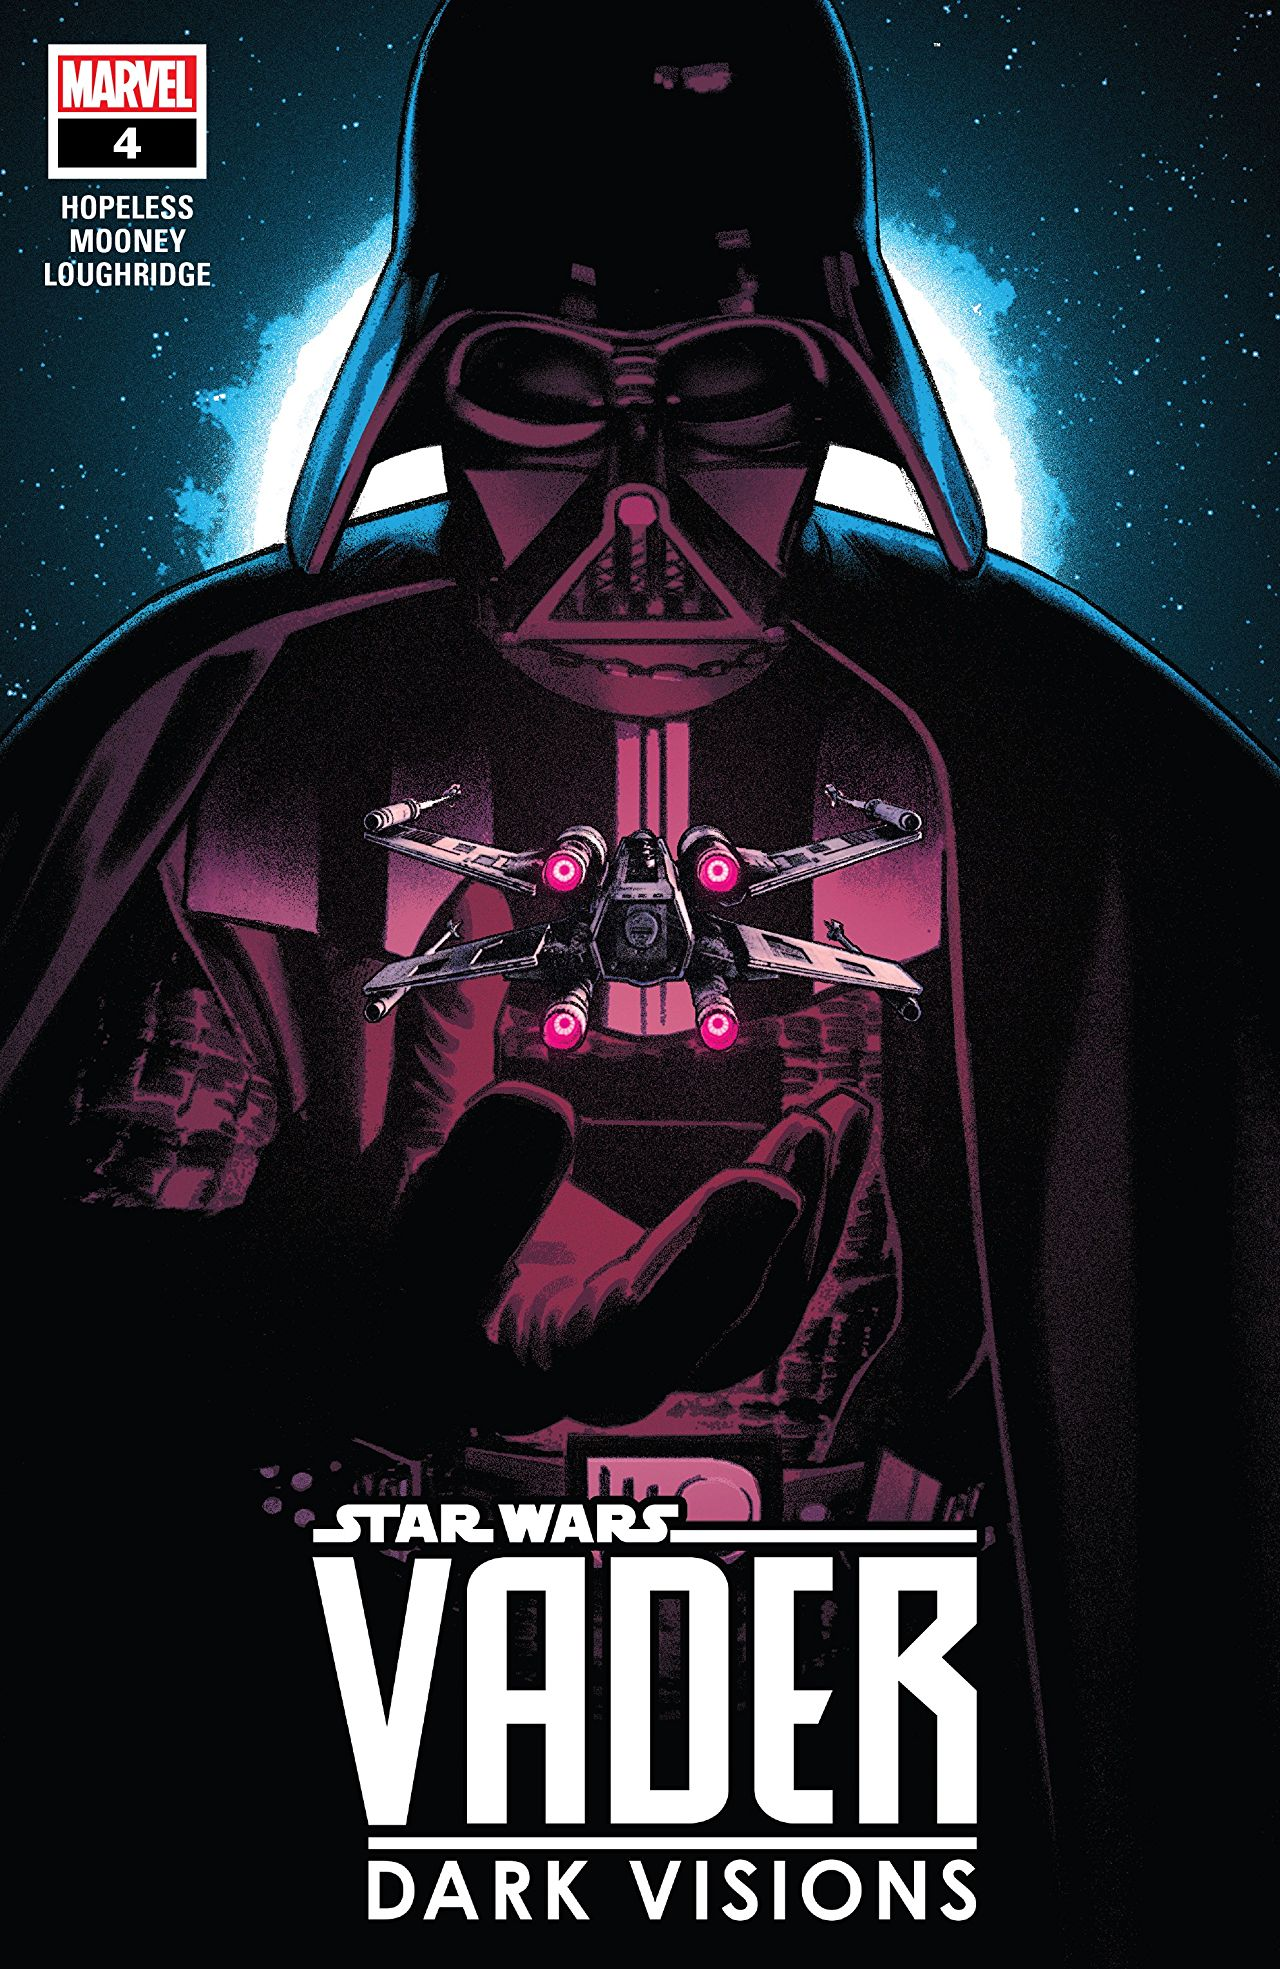 Marvel Preview: Star Wars: Vader - Dark Visions #4